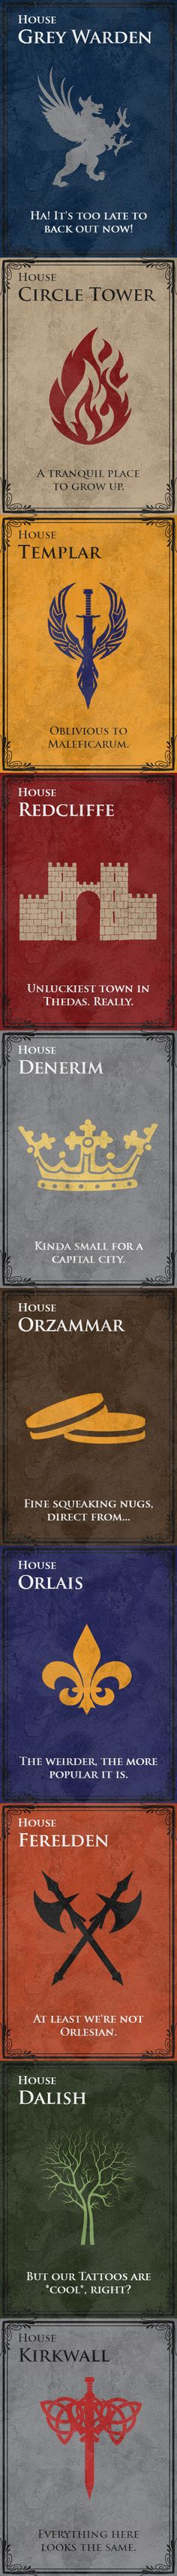 Dragon Age in Game of Thrones Sigil style banners -- I know these aren't the actual symbols, but the sigil creator site doesn't let you upload images and I was too lazy to fully Photoshop this set from scratch. Oh, and there's a character limit on the sigil generator, so i had to make do with that also.